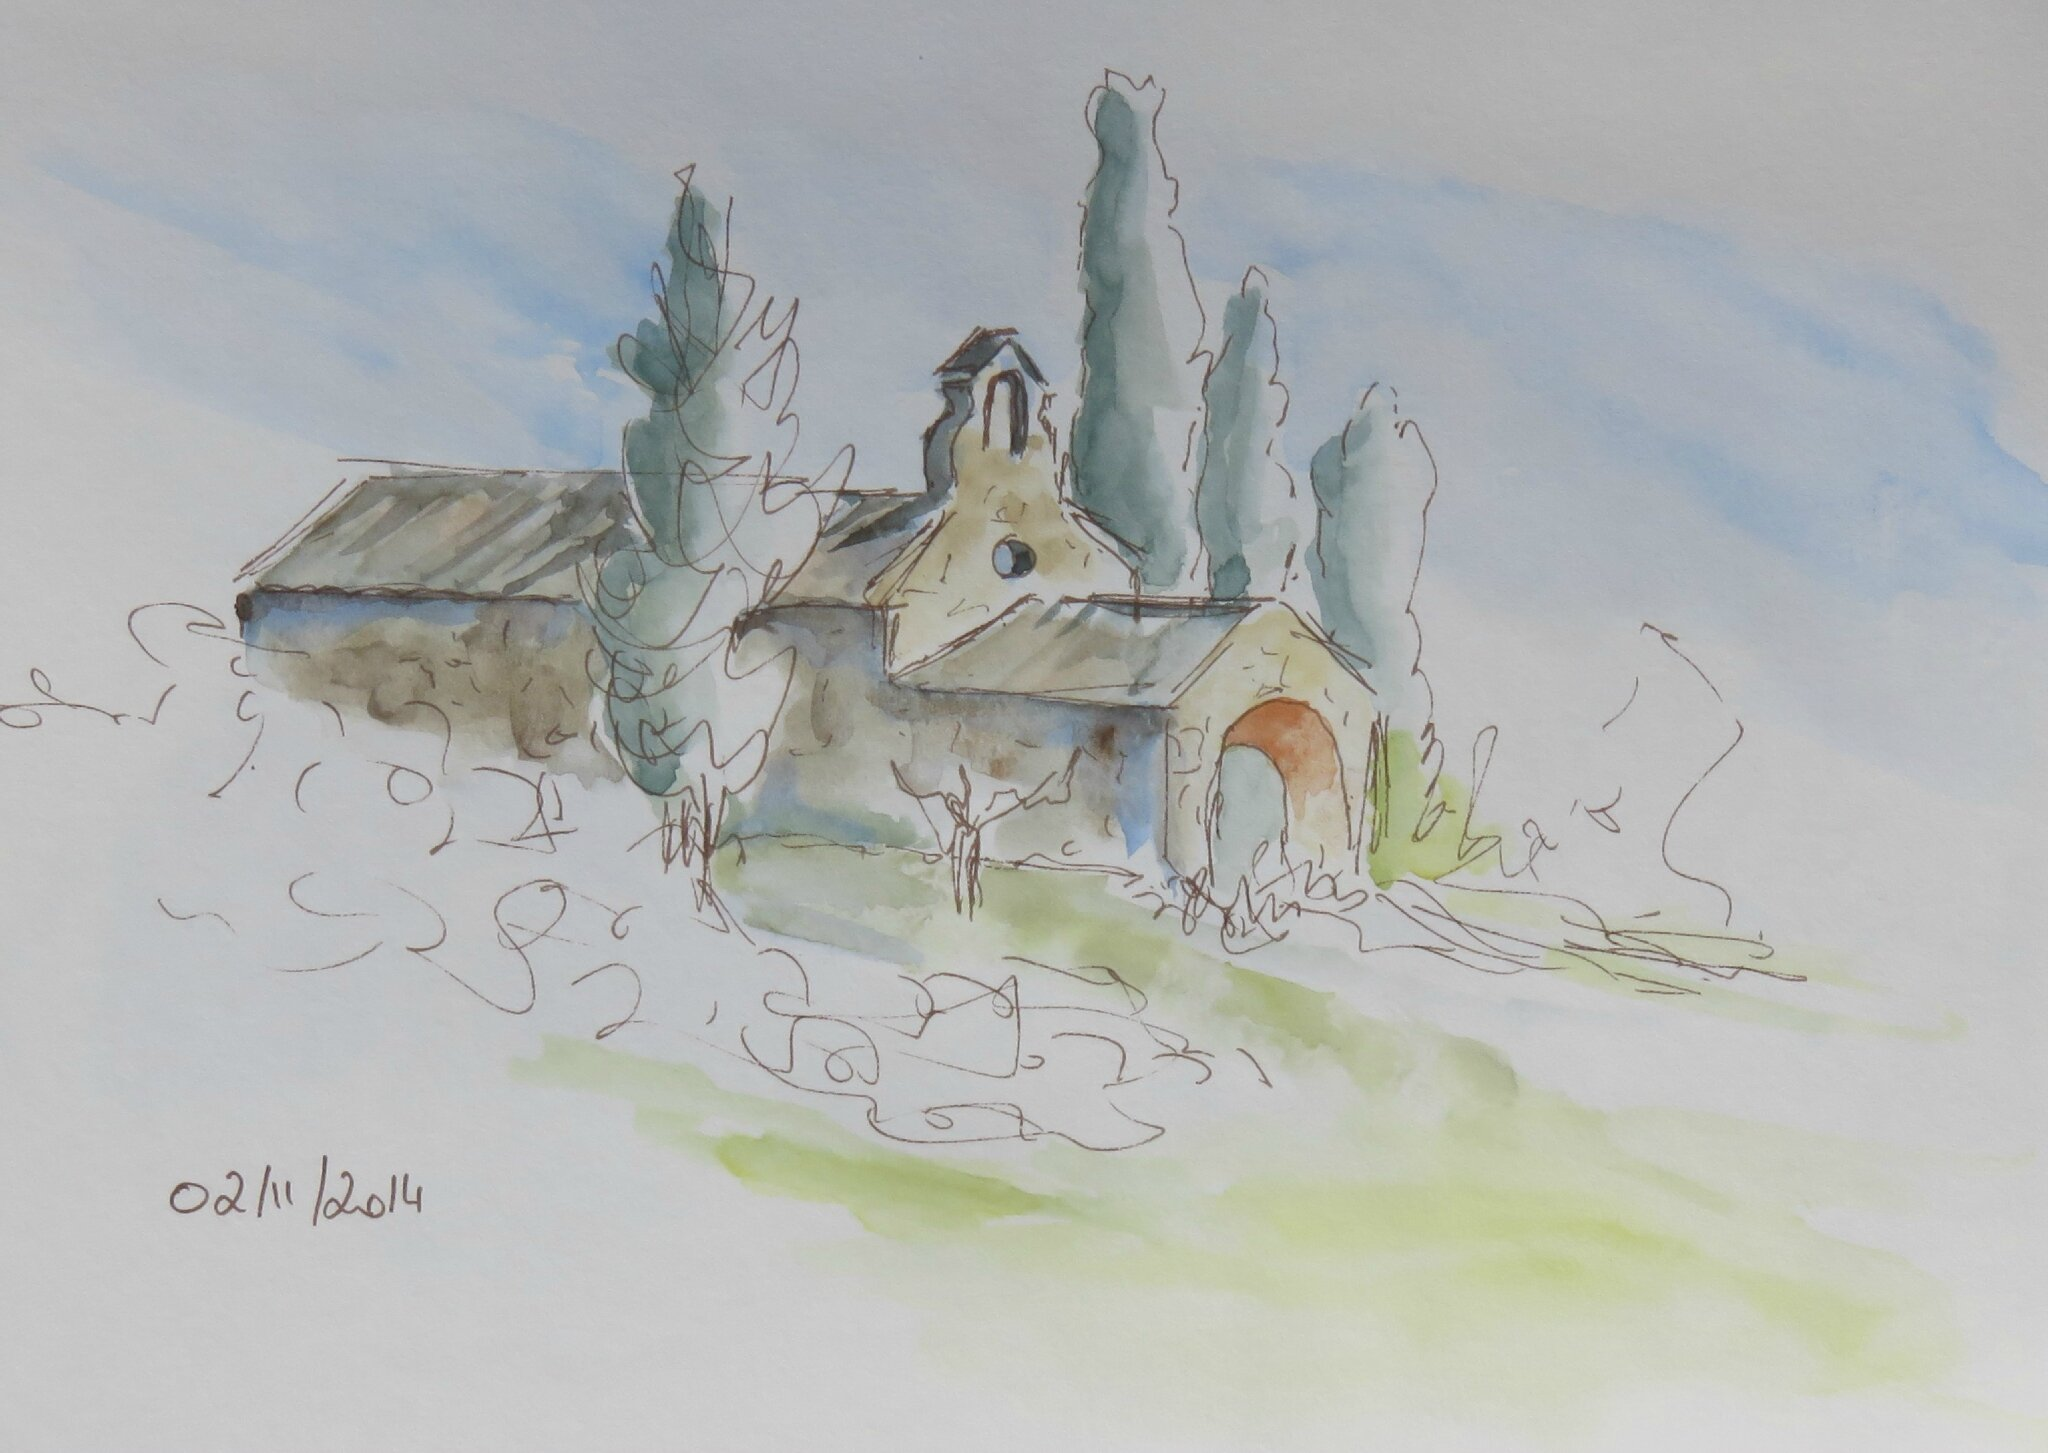 13-chapelle-d-eygalieres-1